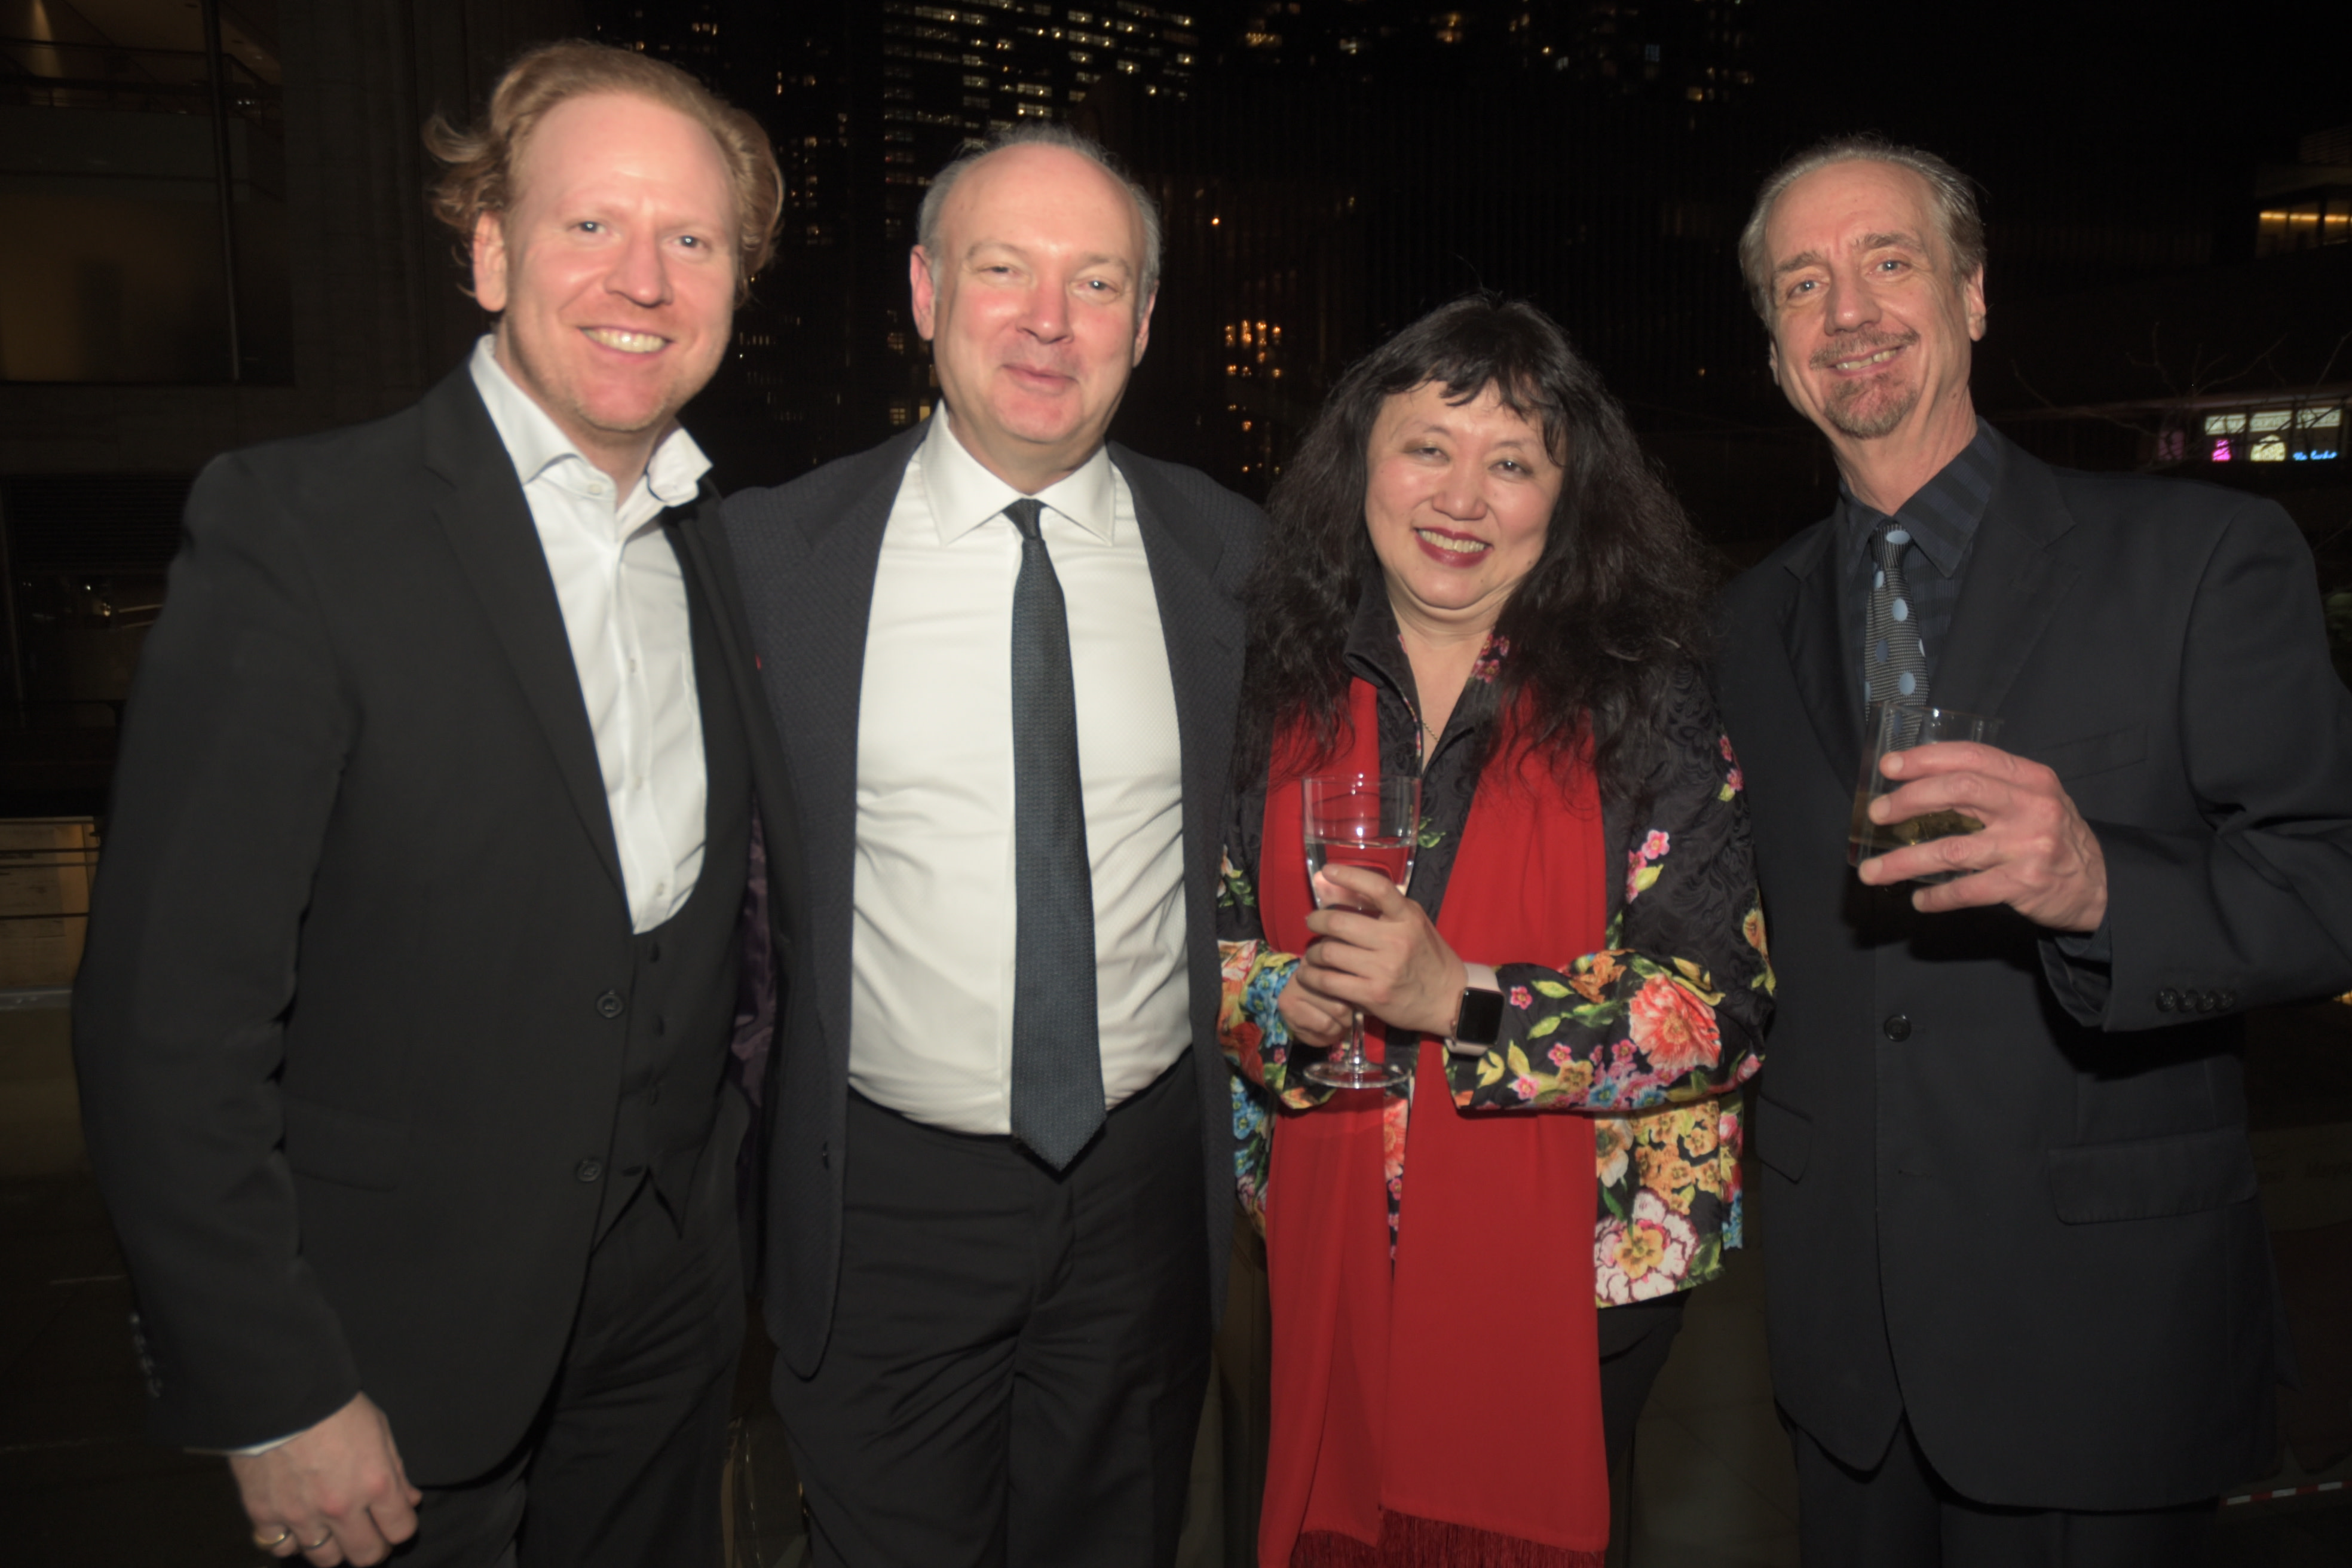 Daniel Hope, Paul Neubauer, Wu Han, Artistic Director David Finckel